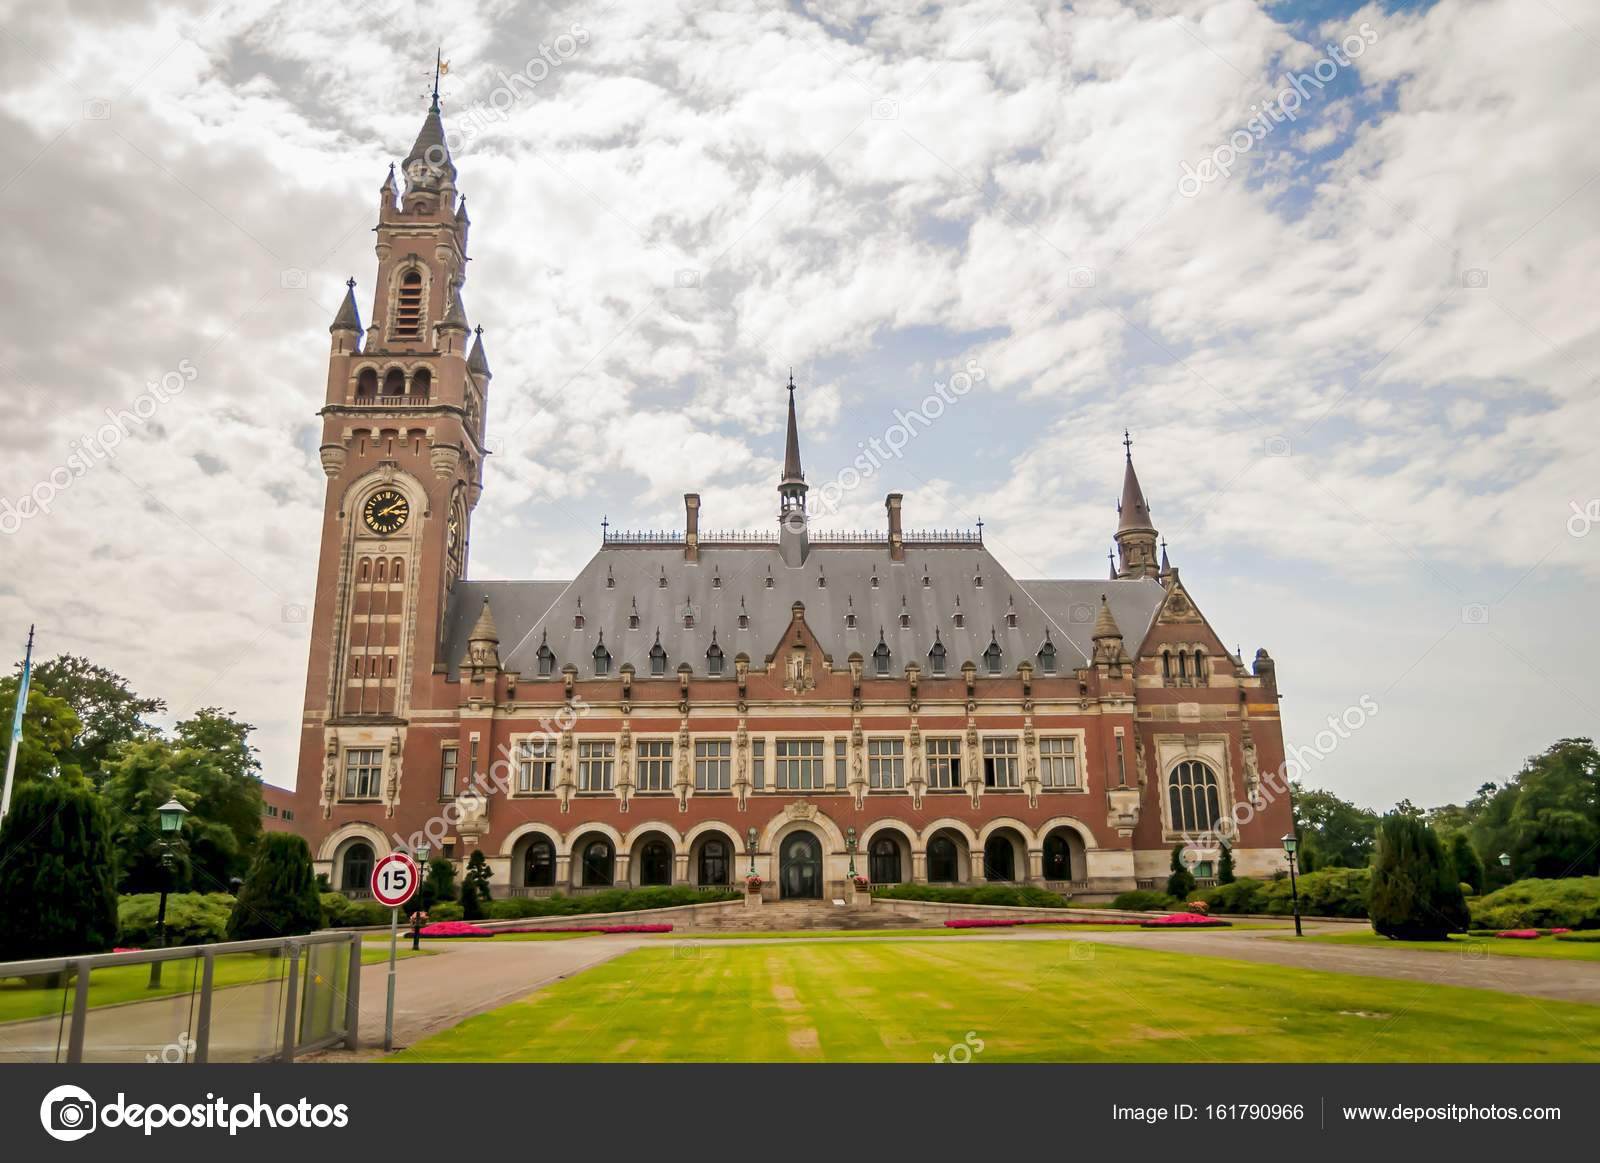 the viability of the international court There is also the option of the philippines going to international court of justice (icj) to directly resolve sovereignty-related disputes, or try to get the support of the un general assembly to.